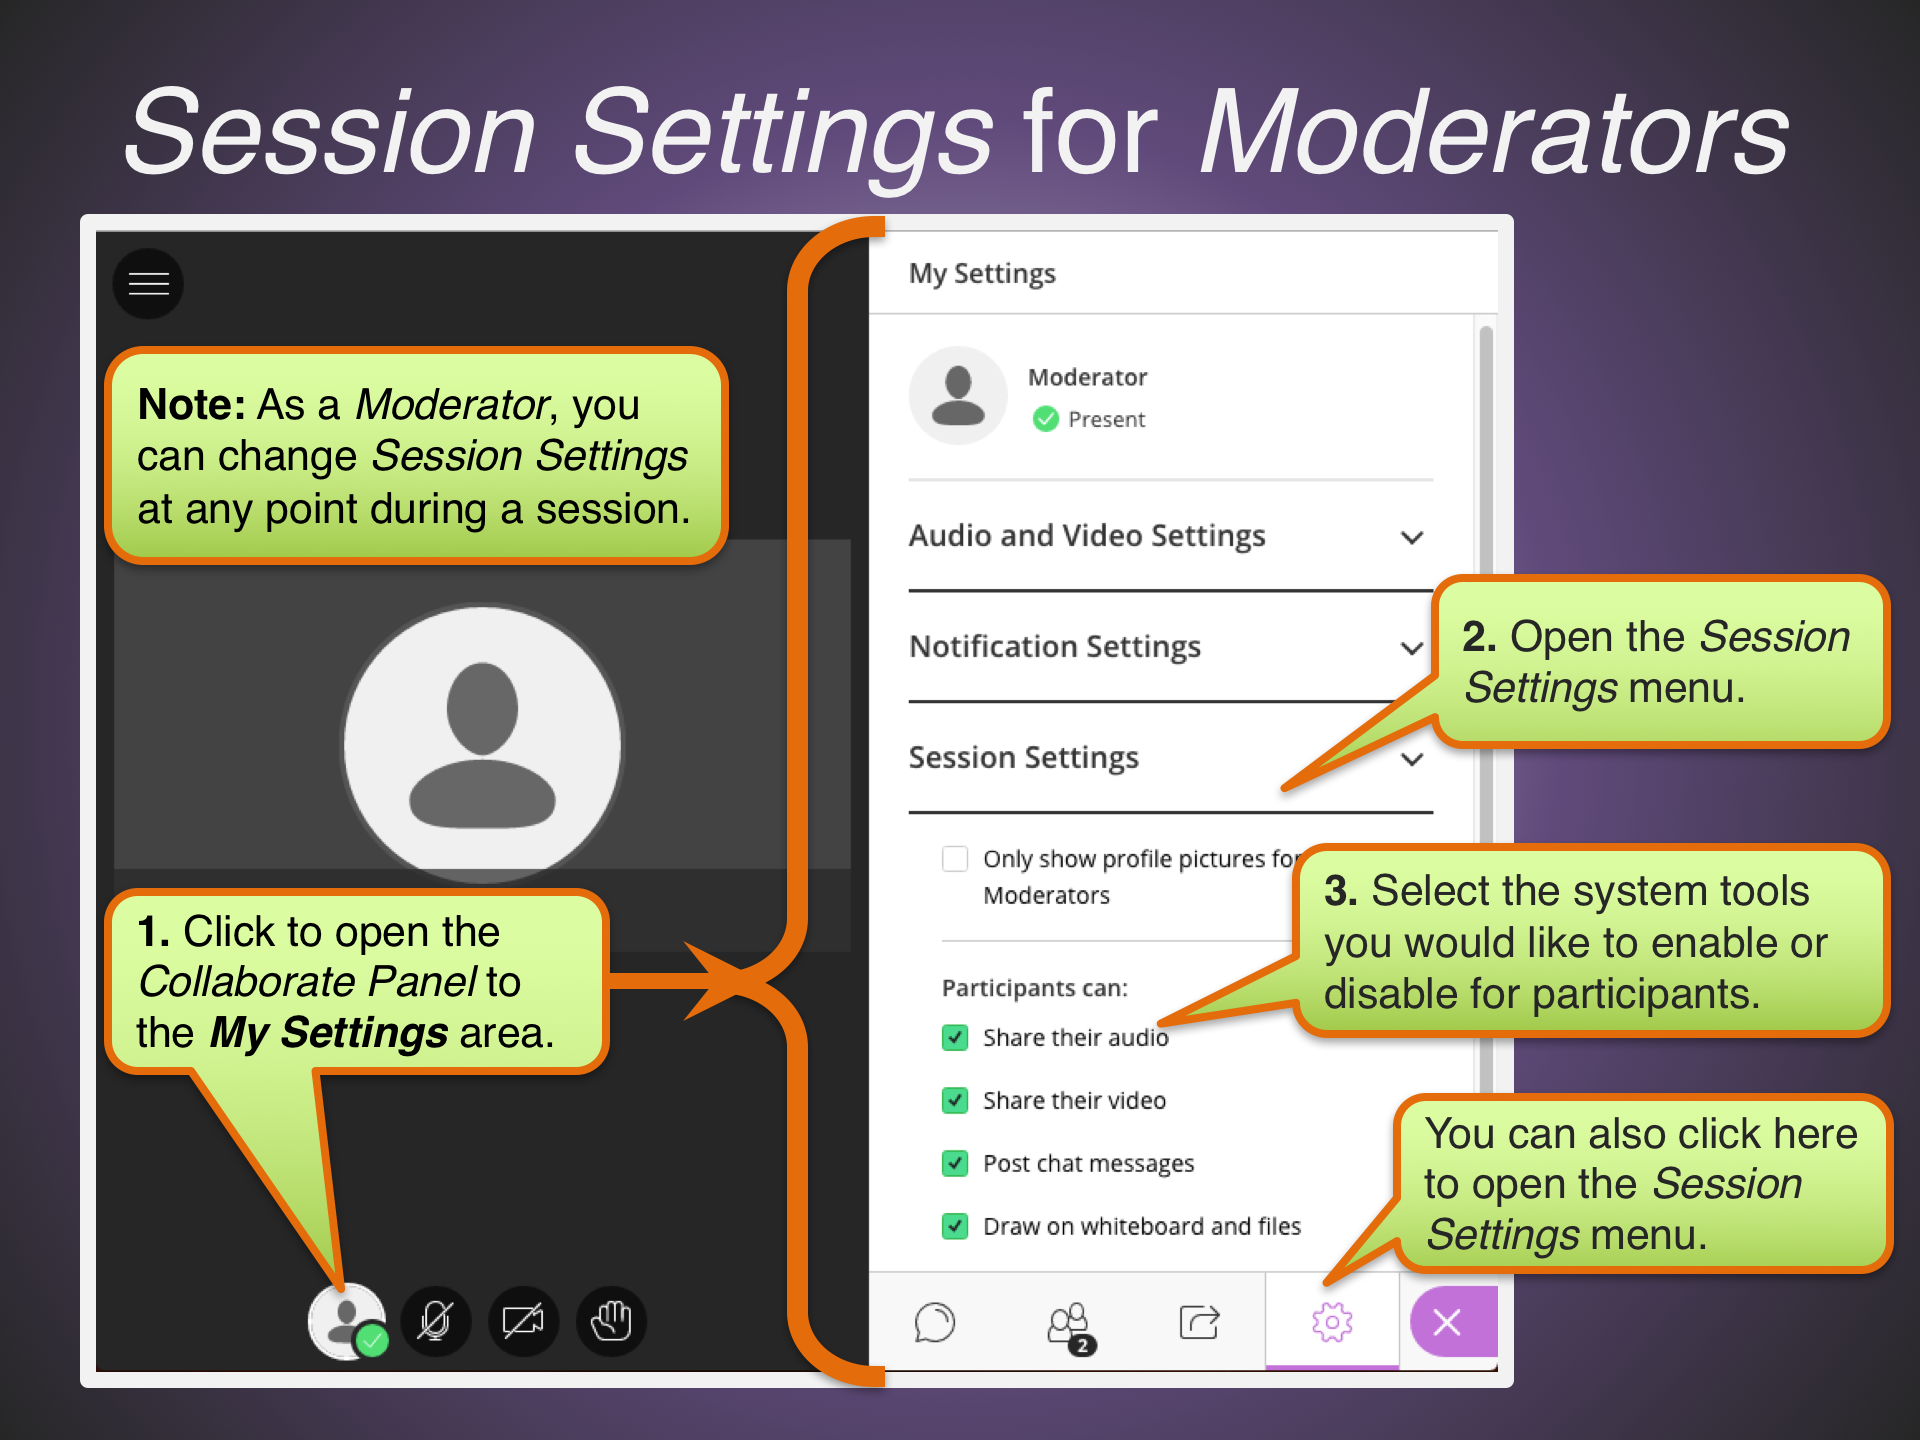 Session Settings for Moderators